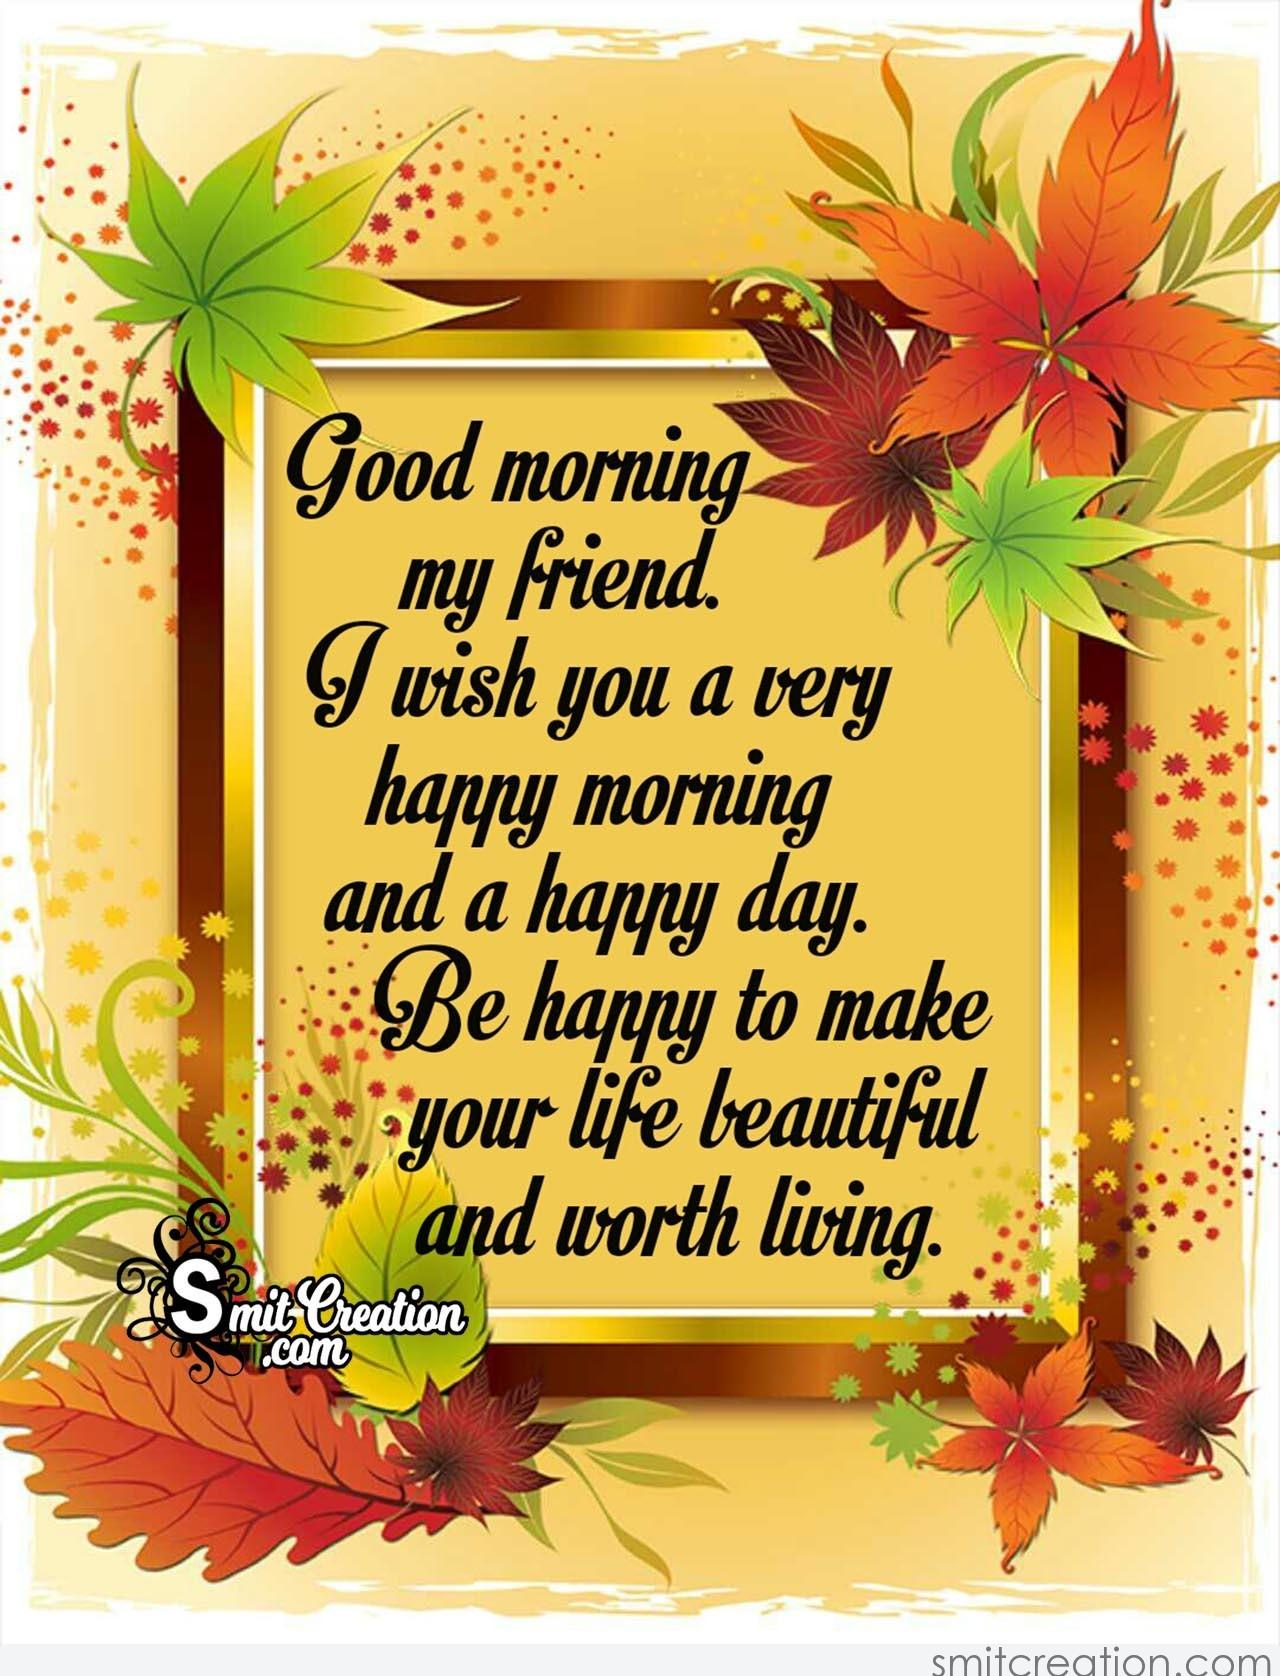 Good Morning Message For Friends: Pictures and Graphics